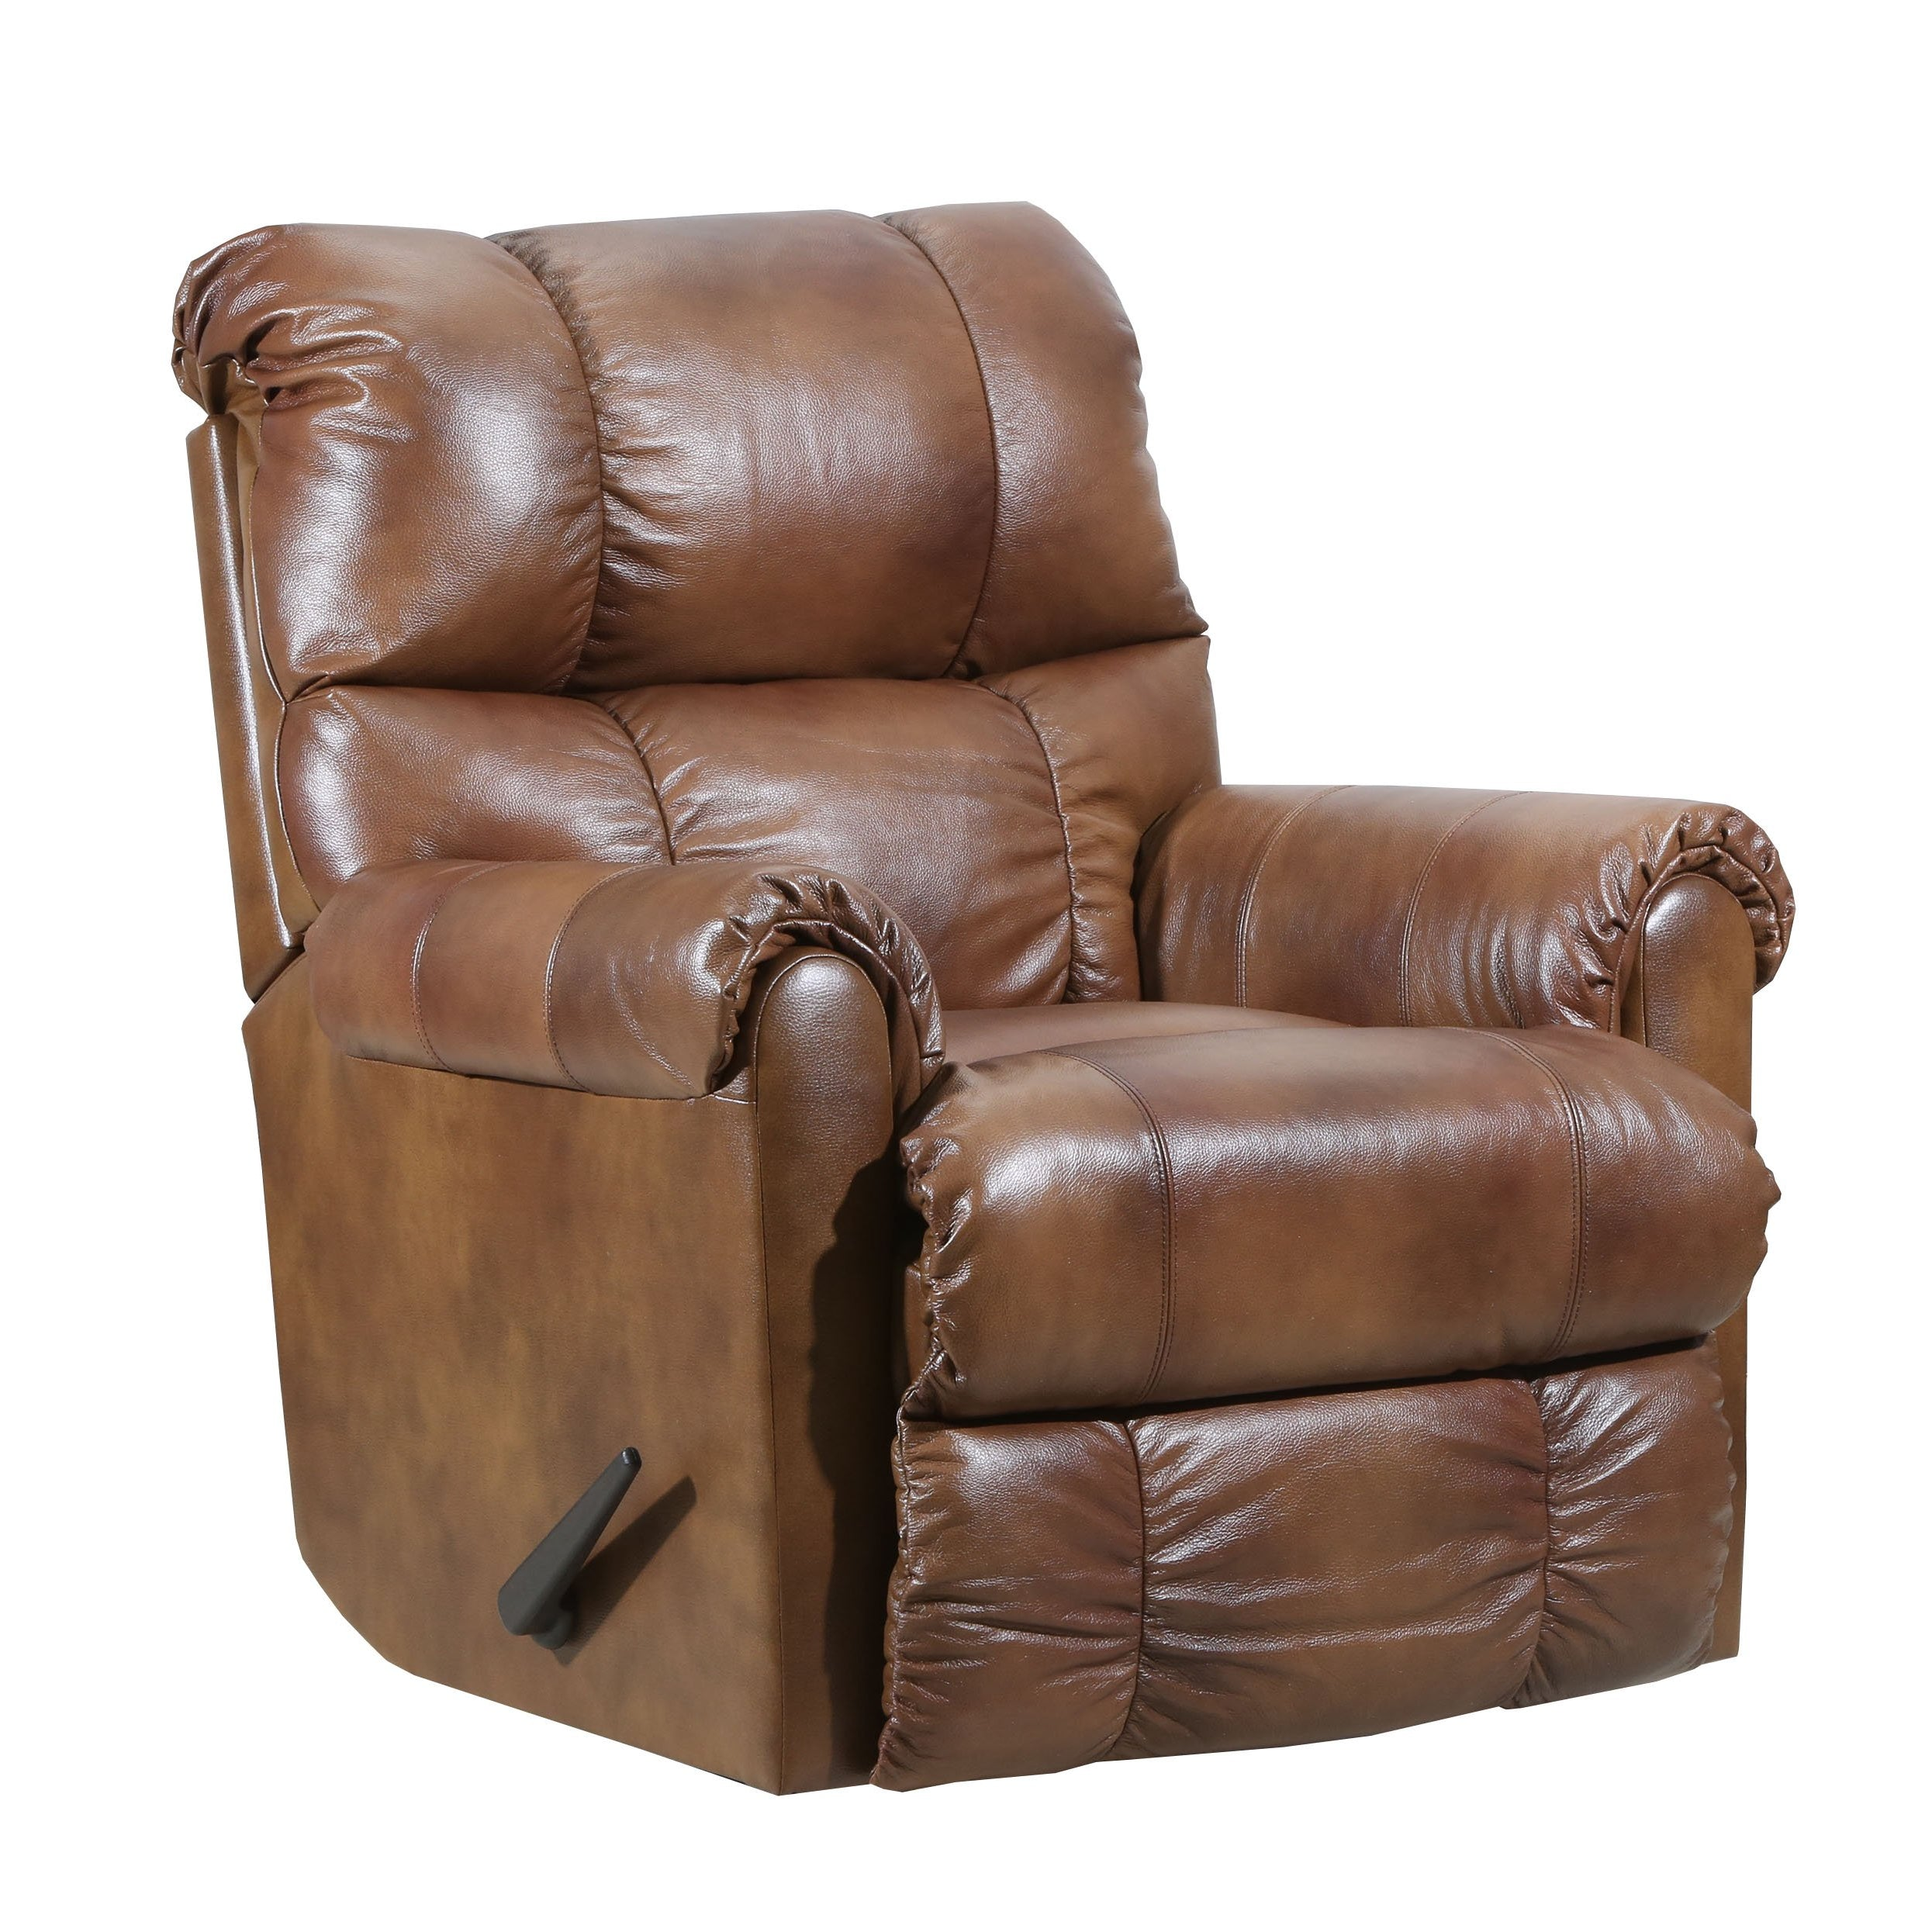 Lane Home Furnishings 4208 Soft Touch Chaps 3 Way Rocker, Recliner - Lifestyle Furniture